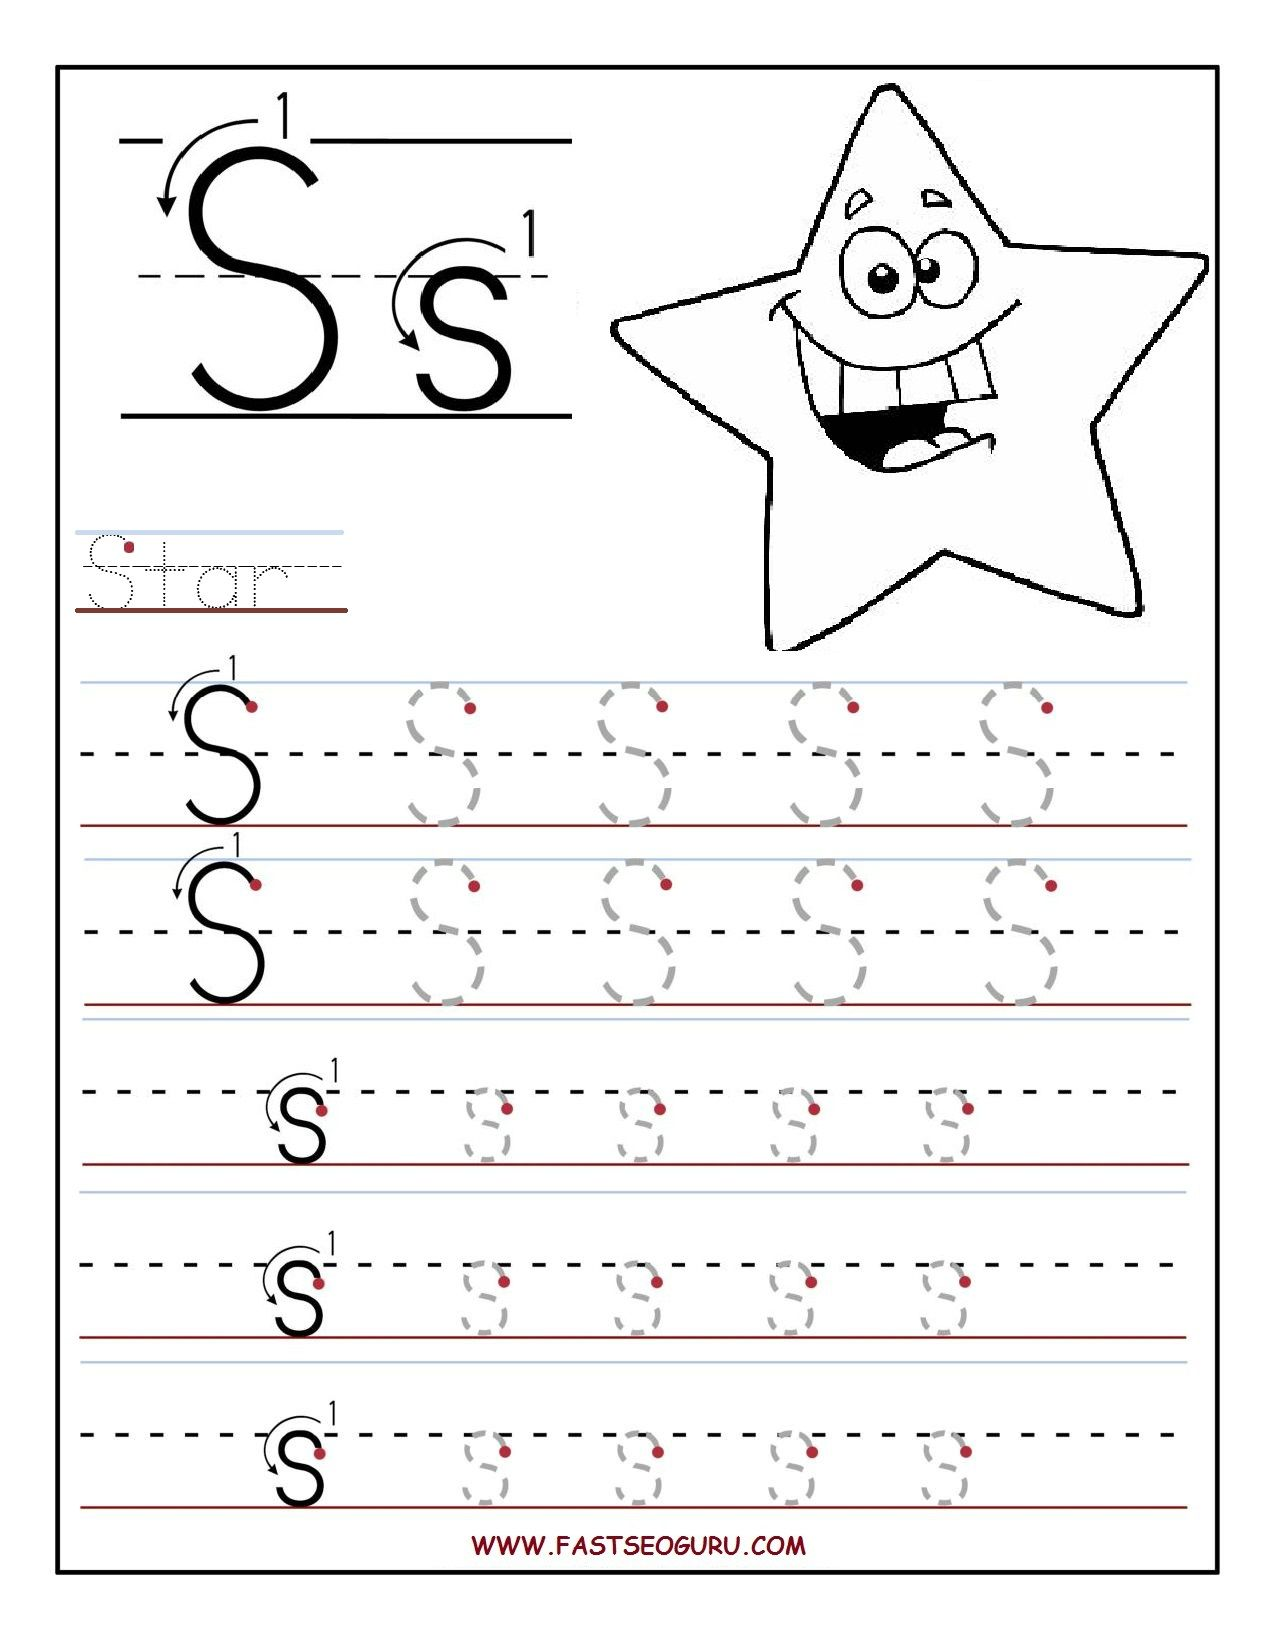 Printable letter S tracing worksheets for preschool | For ...